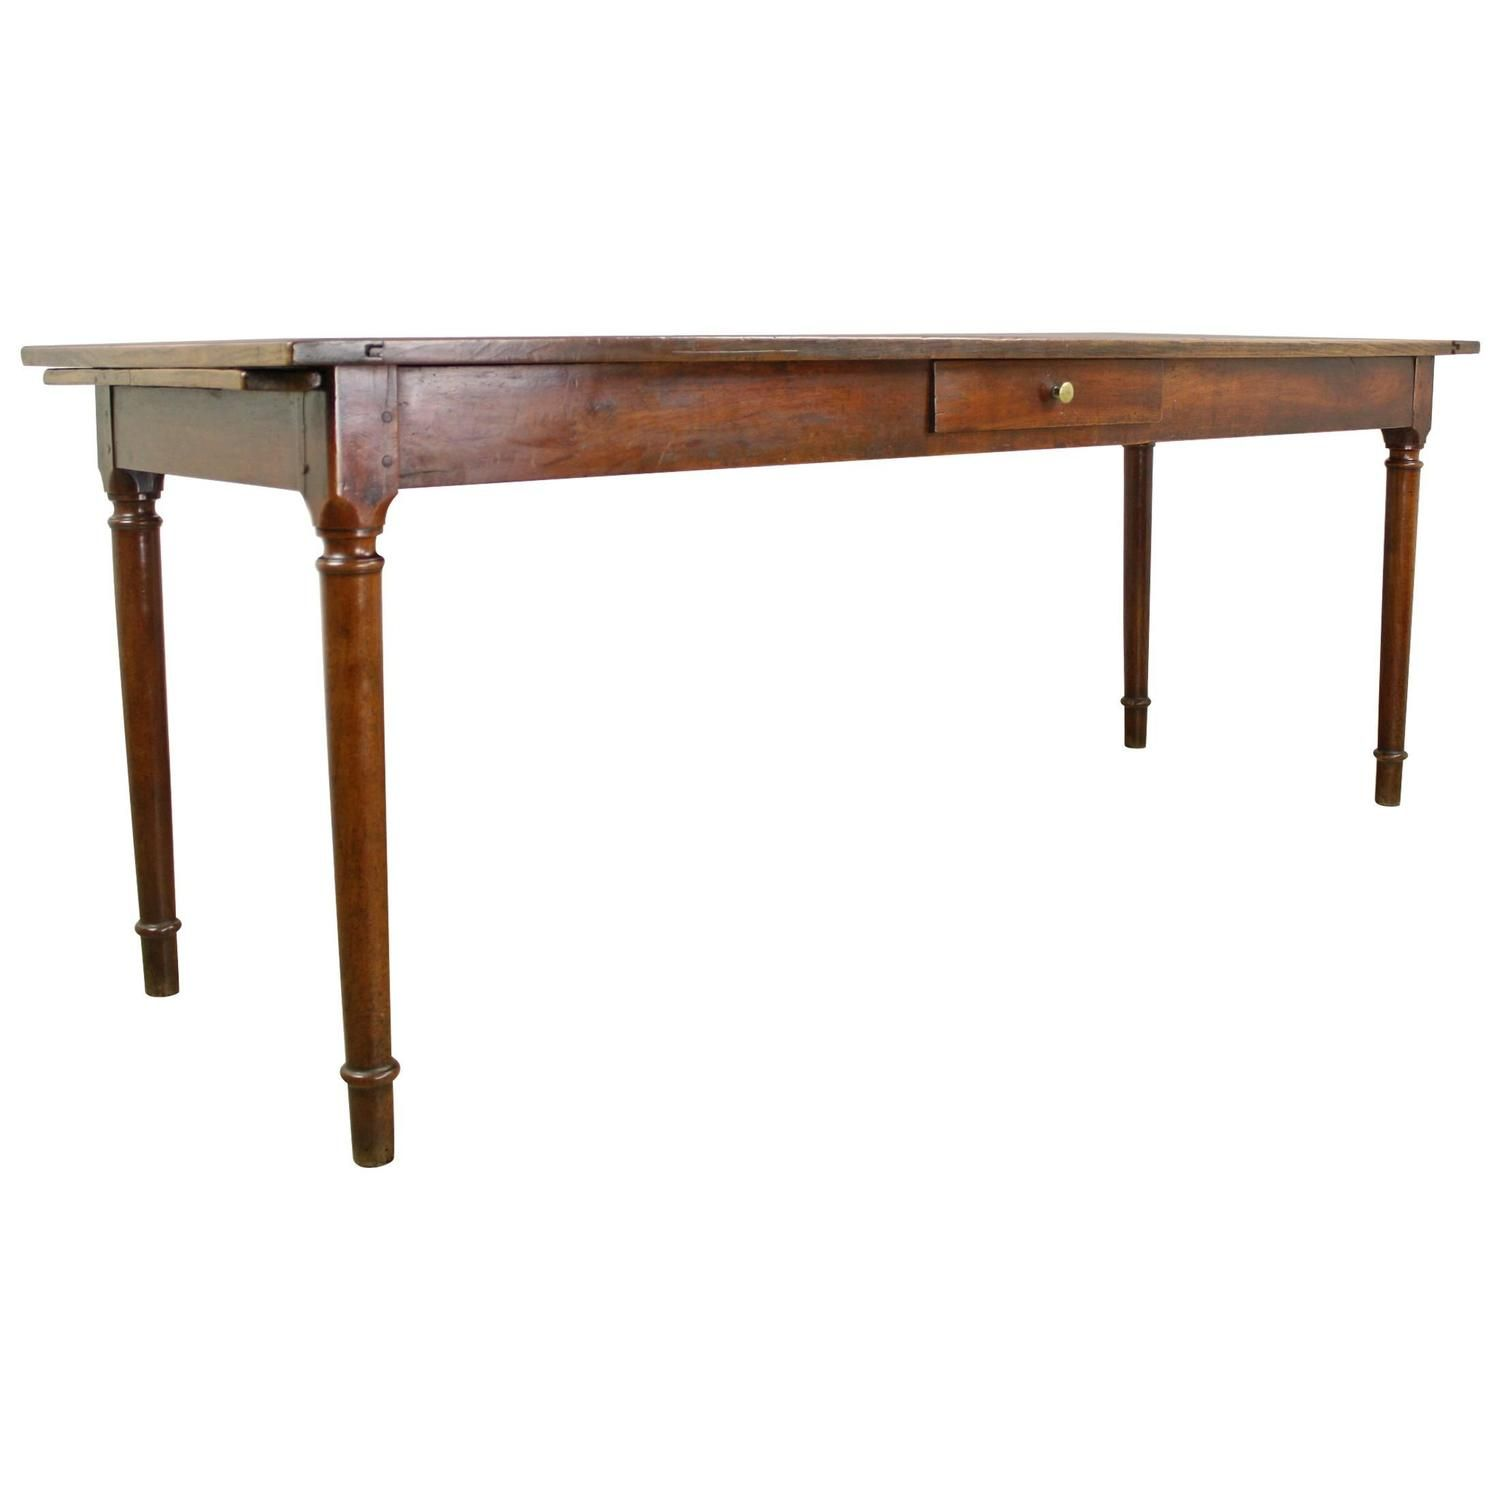 Antique One Drawer Light Cherry Server Narrow Dining Table Bread